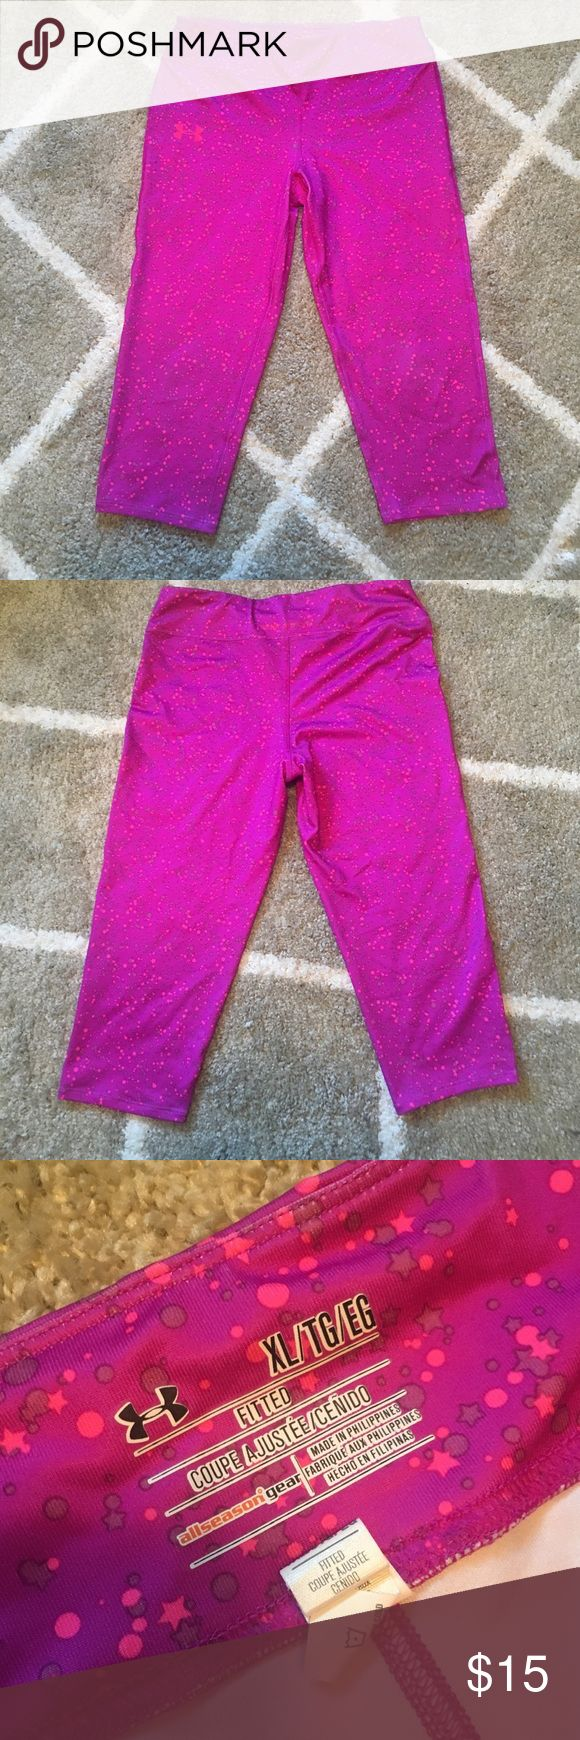 Under Armor Capri leggings Purple with neon pink stars.  Capri length. Worn once and like new condition. Under Armour Pants Track Pants & Joggers